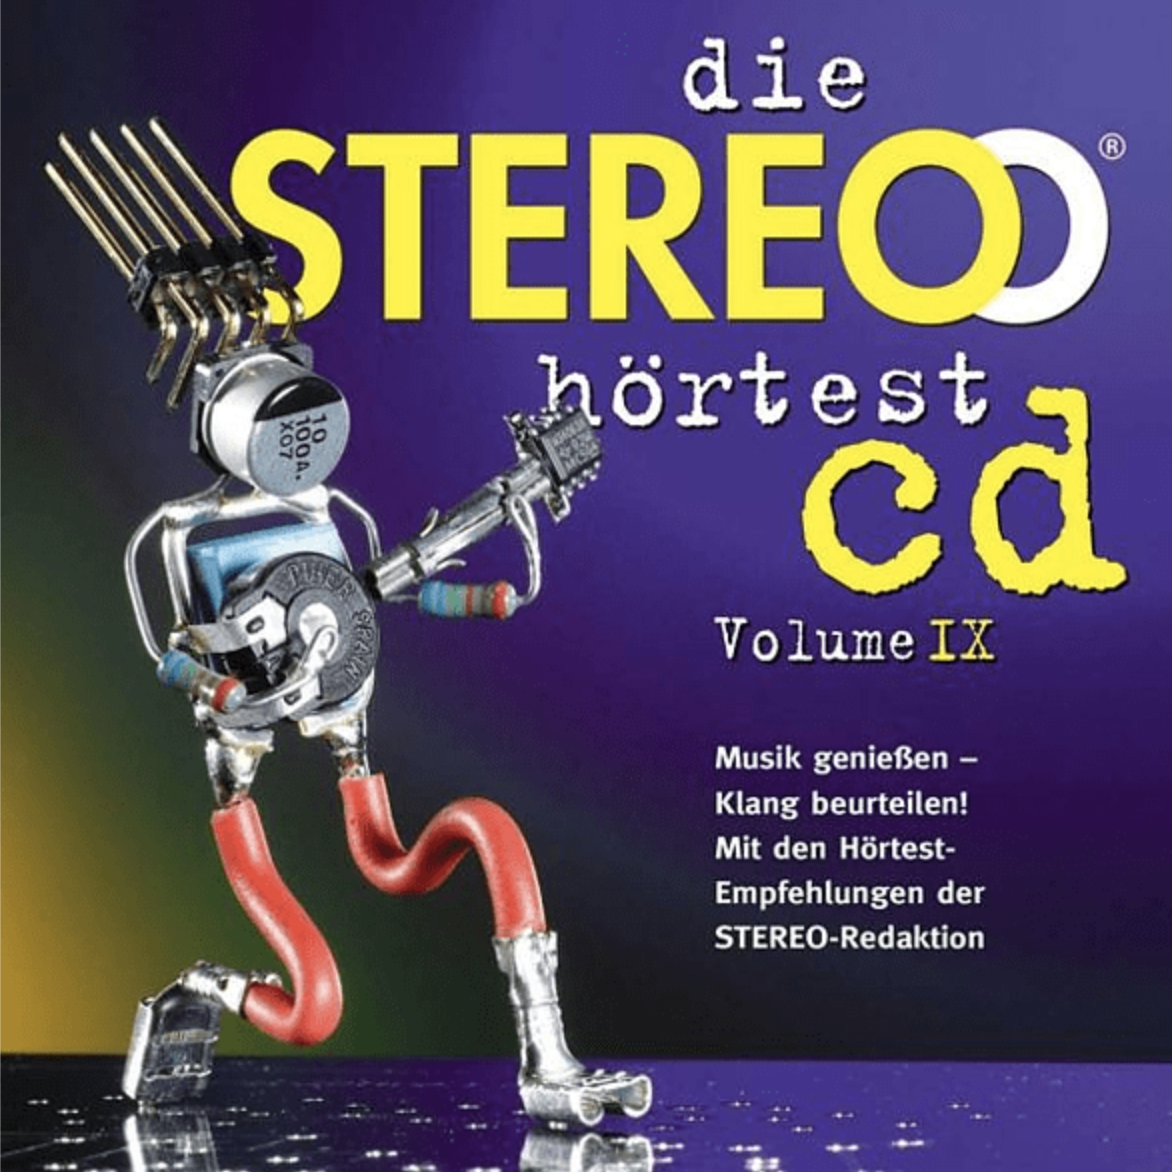 Stereo Hörtest CD Vol. IX